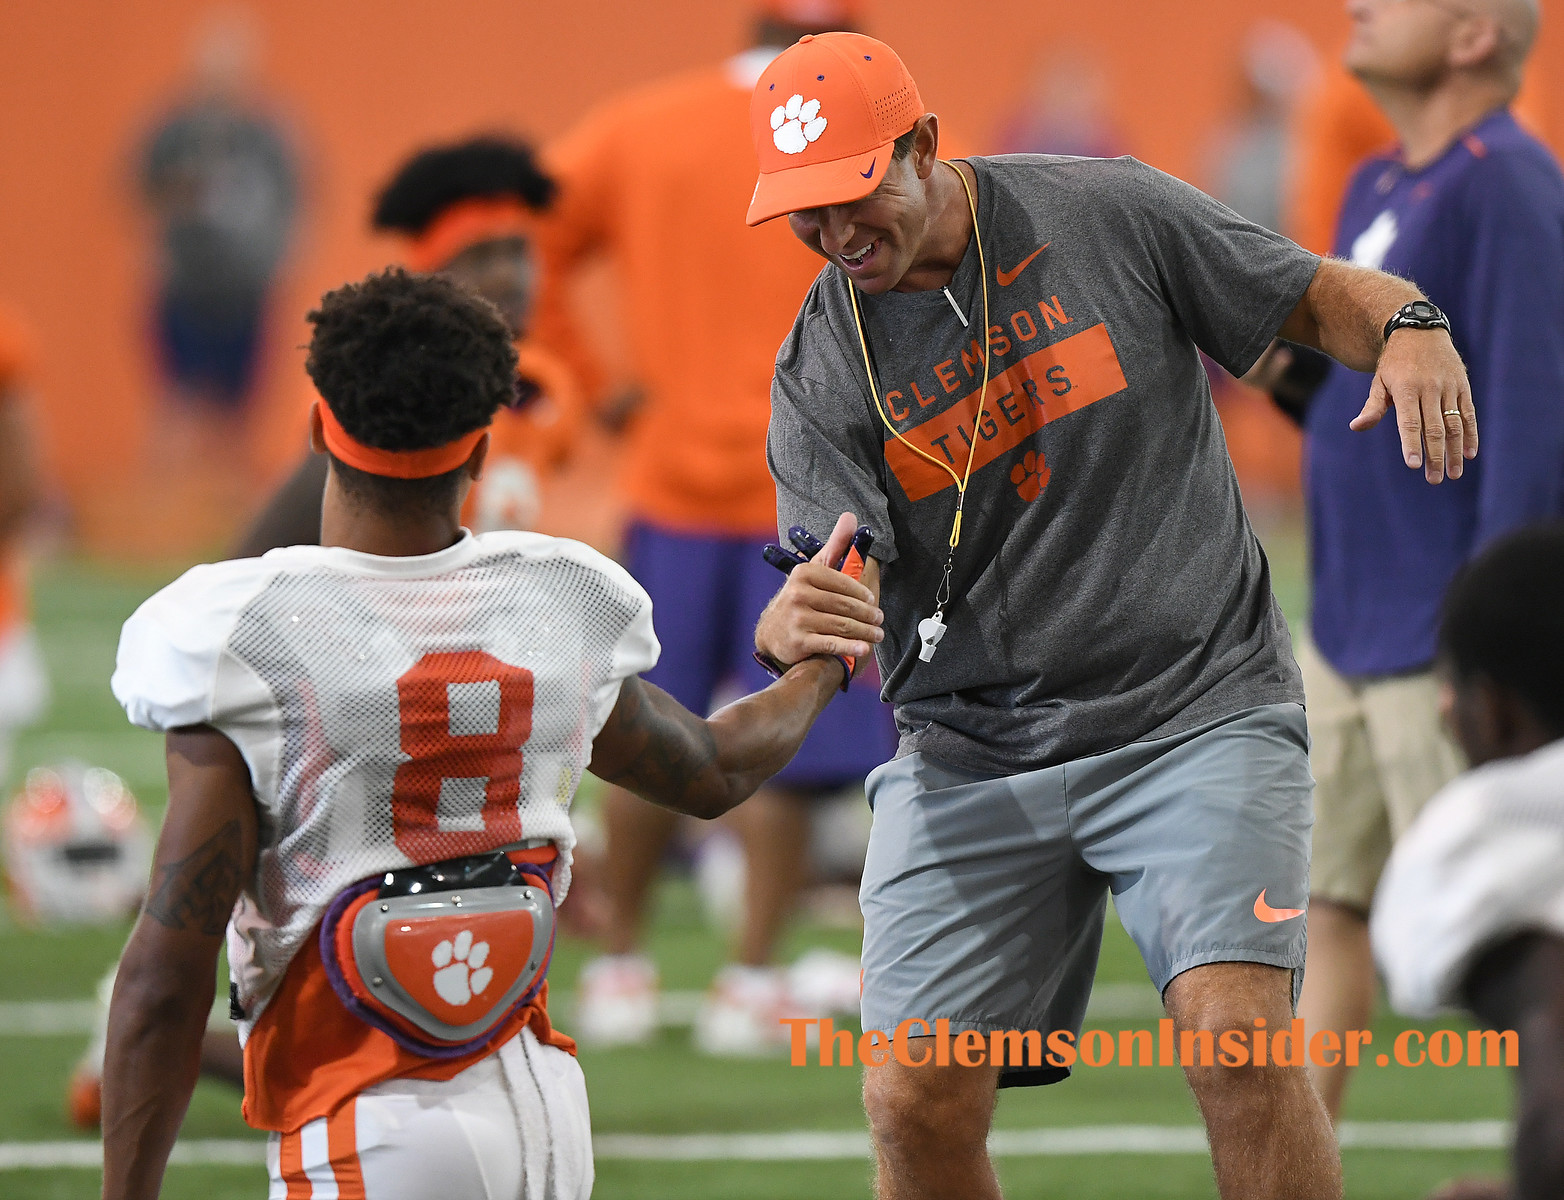 Clemson head coach Dabo Swinney and defensive back A.J. Terrell (8)  during the Tiger's practice Tuesday, August 20, 2019. Bart Boatwright/The Clemson Insider